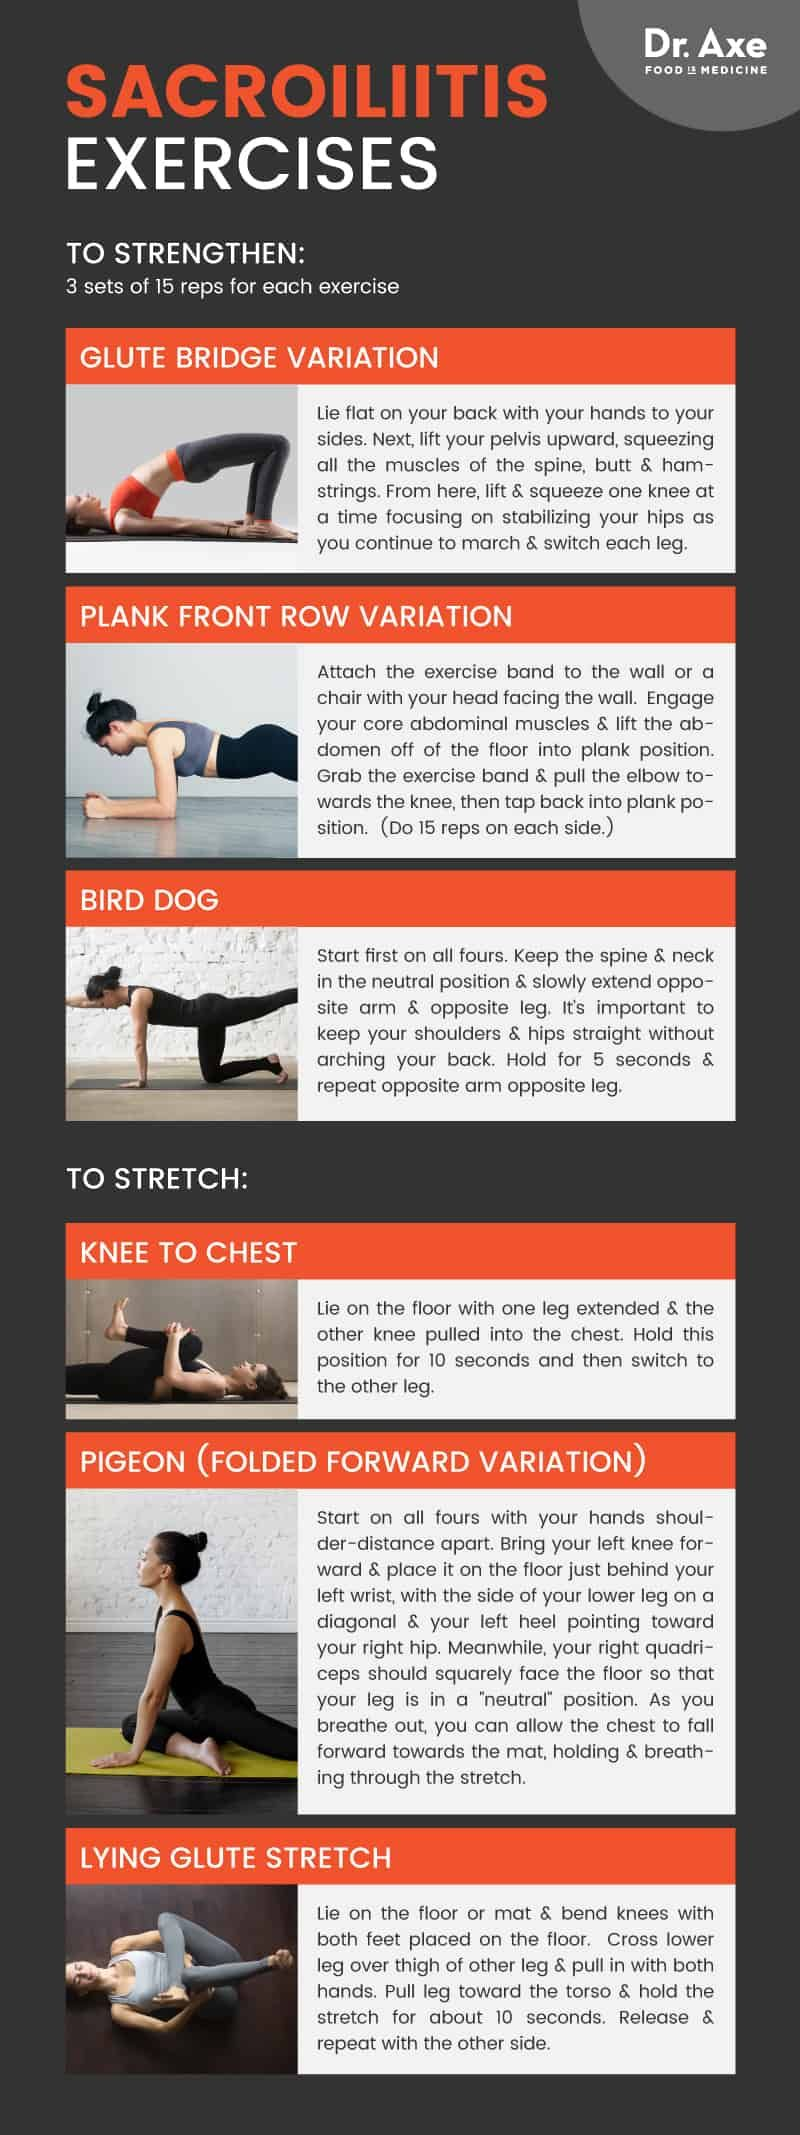 Pin on Muscle pain relief